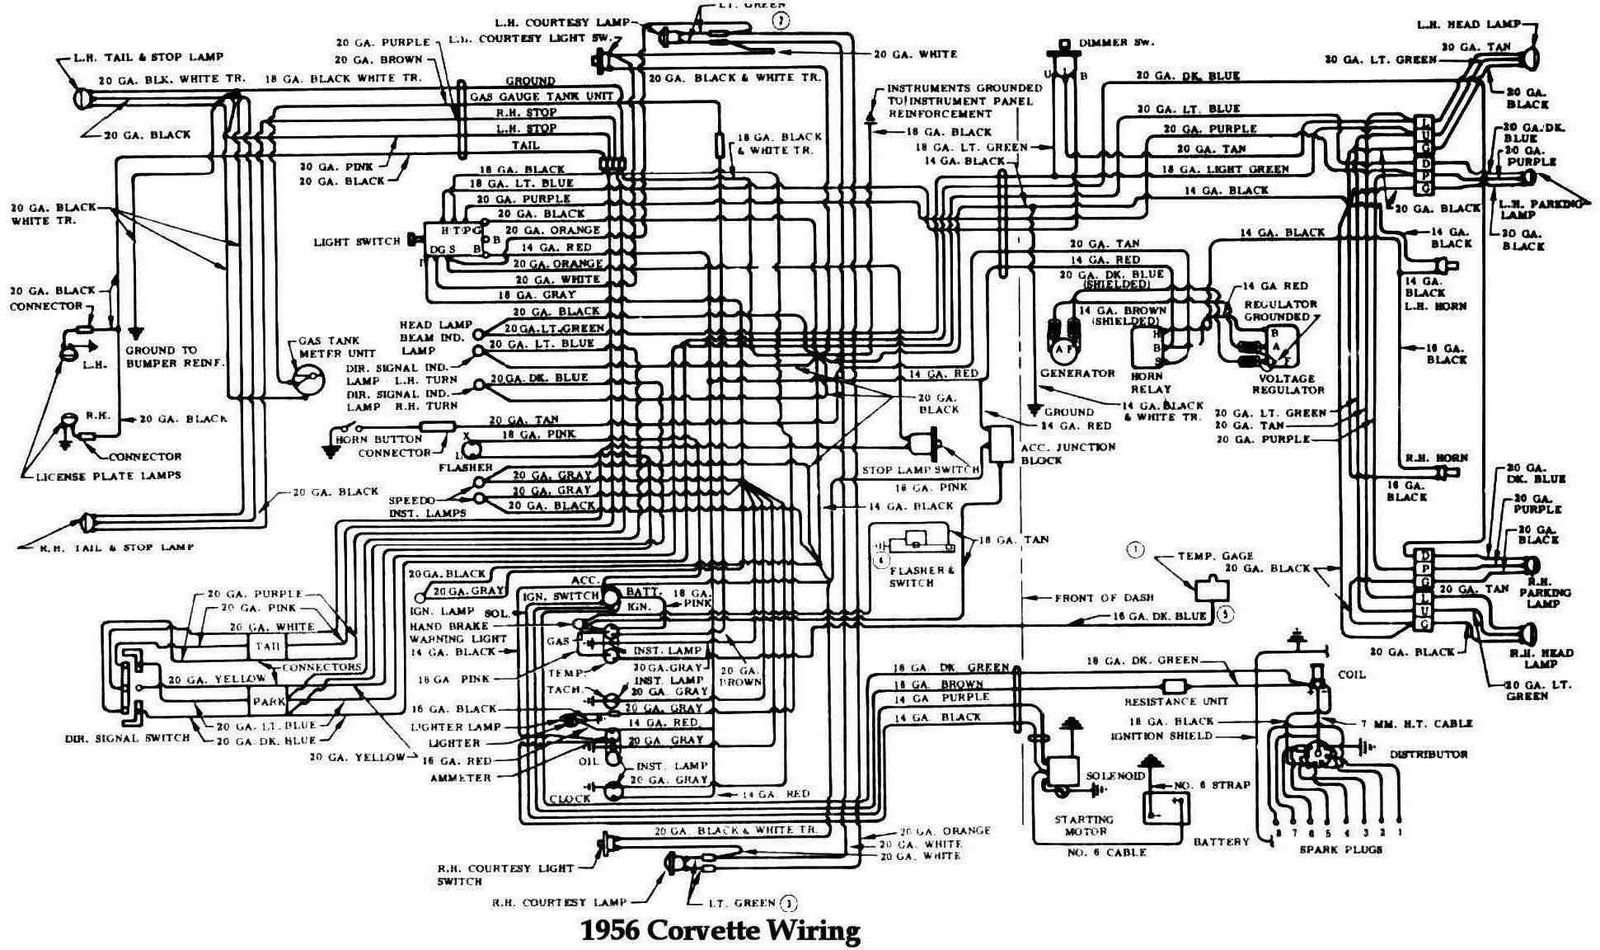 1994 Corvette Wiring Diagram Opinions About 2002 Silverado Heater Schematic Autos Post 1984 1990